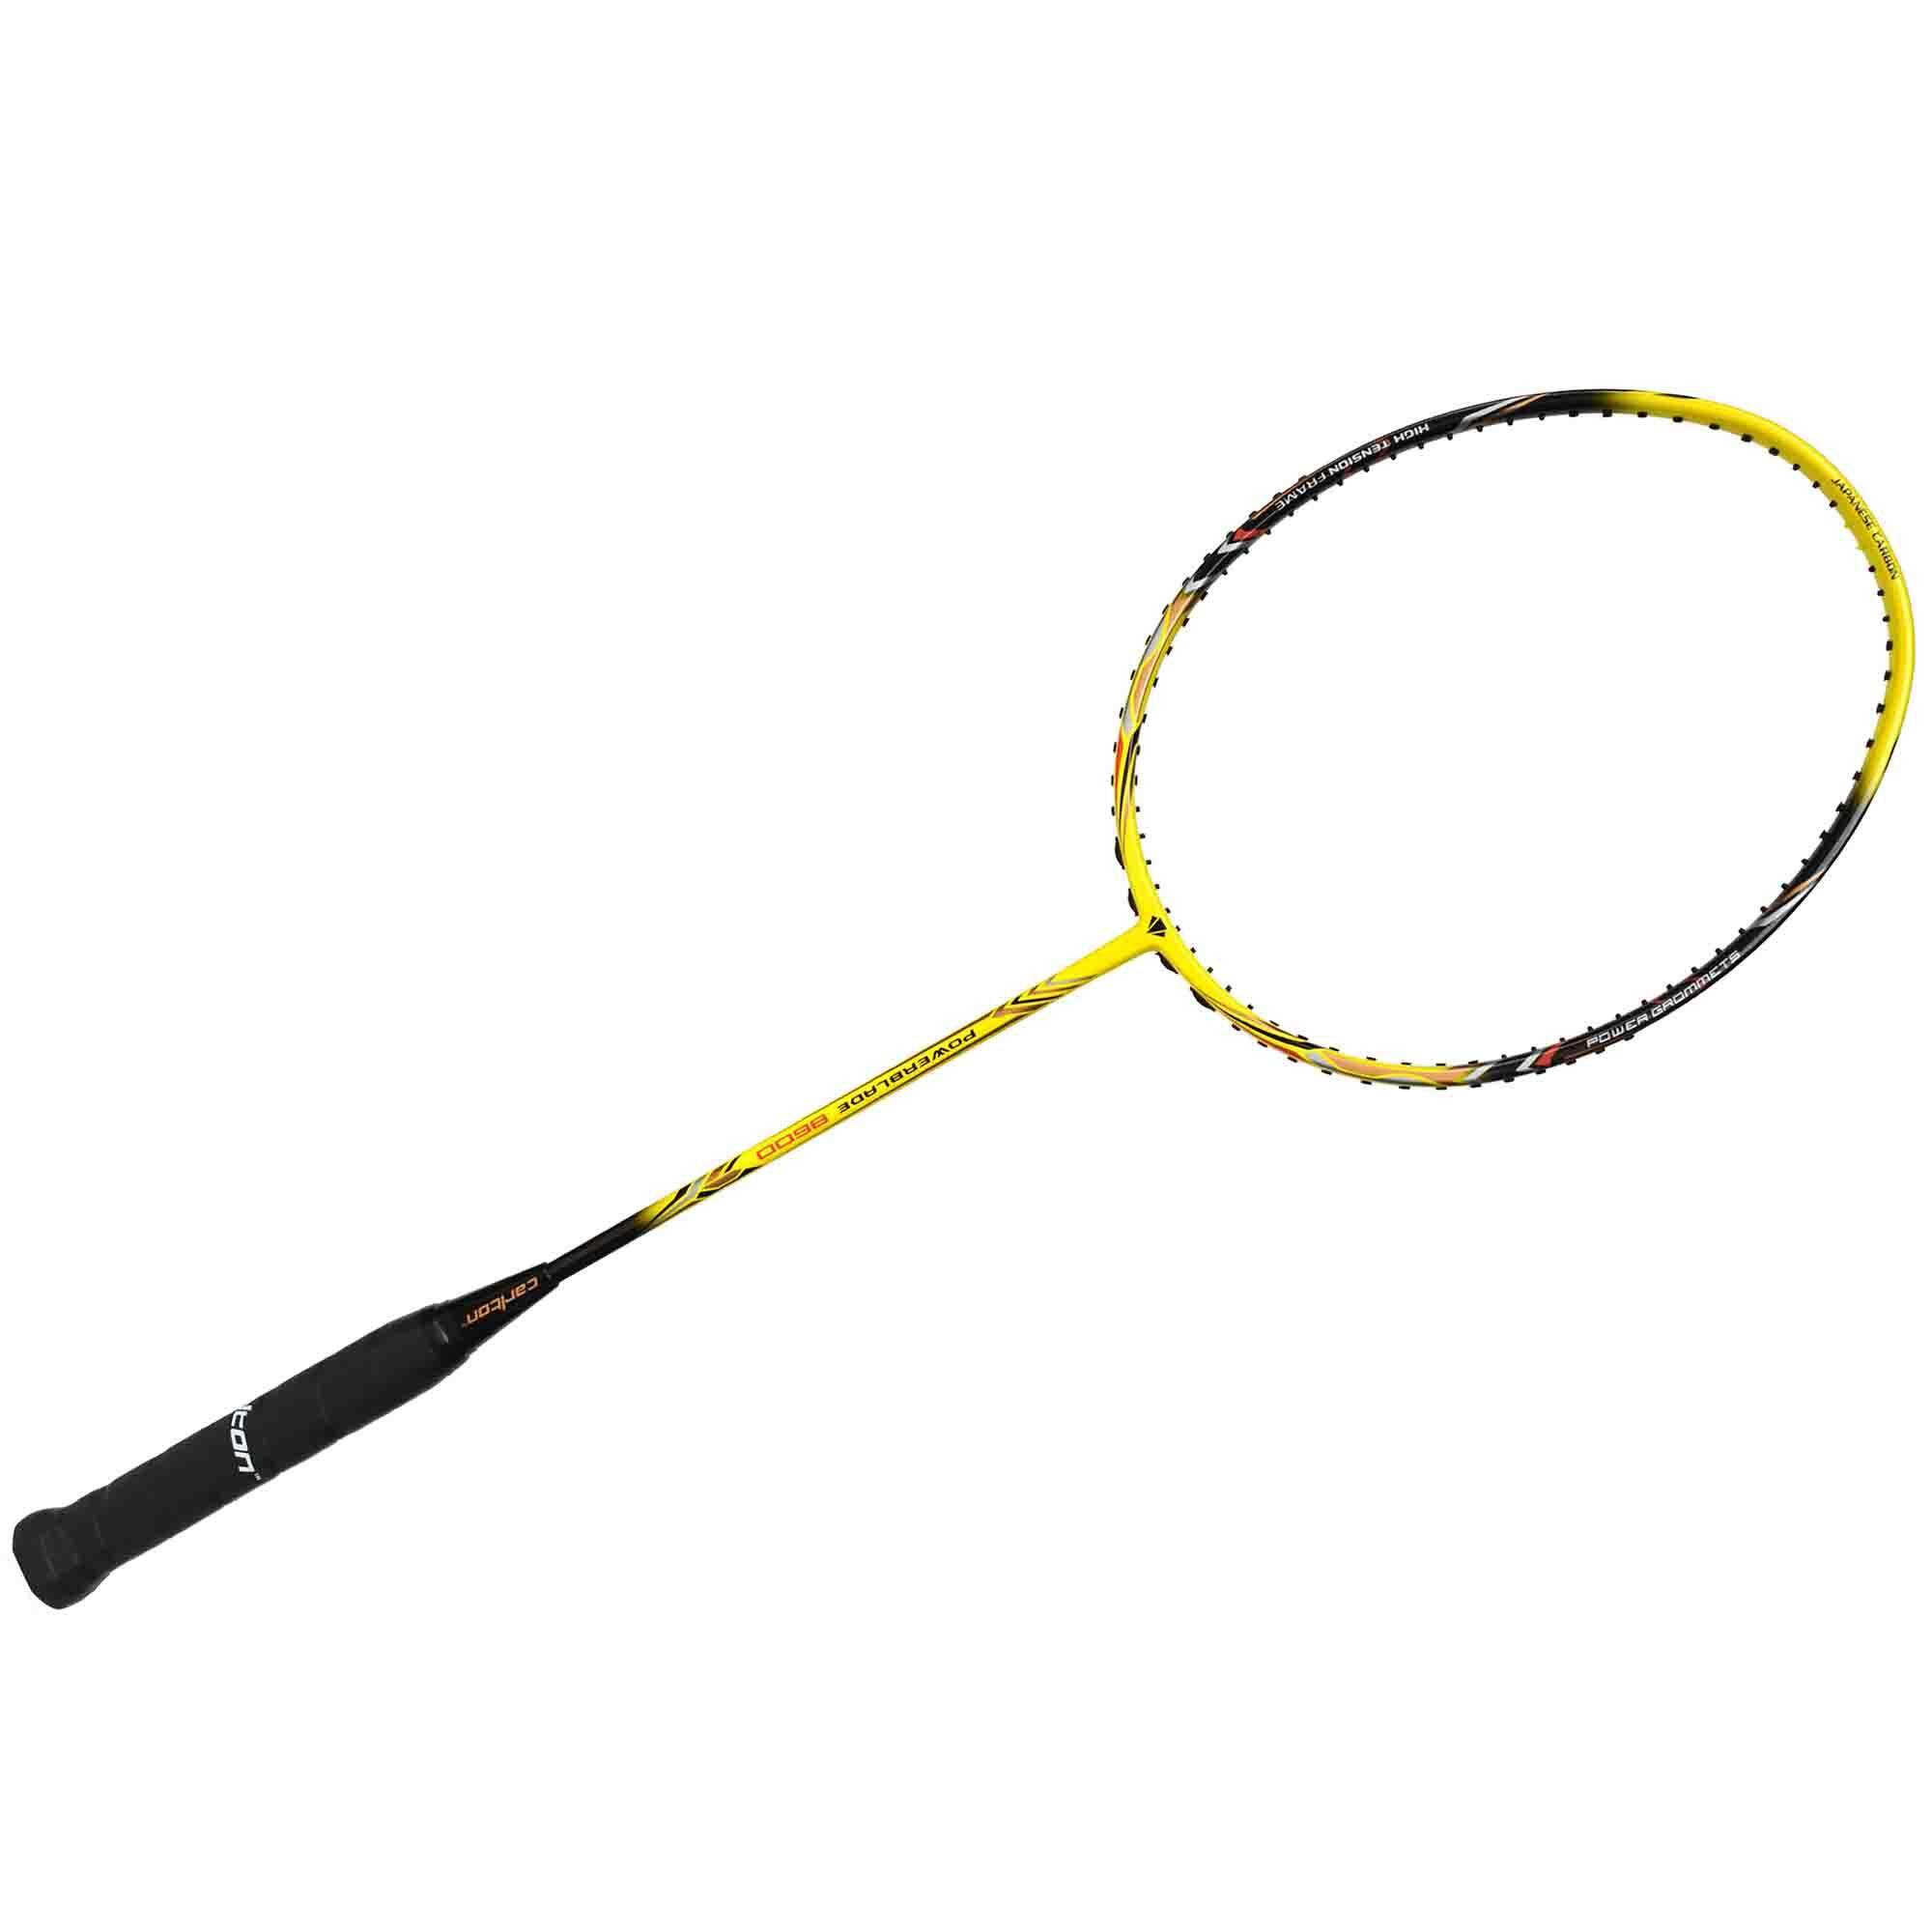 Carlton PowerBlade 8600 Badminton Racket